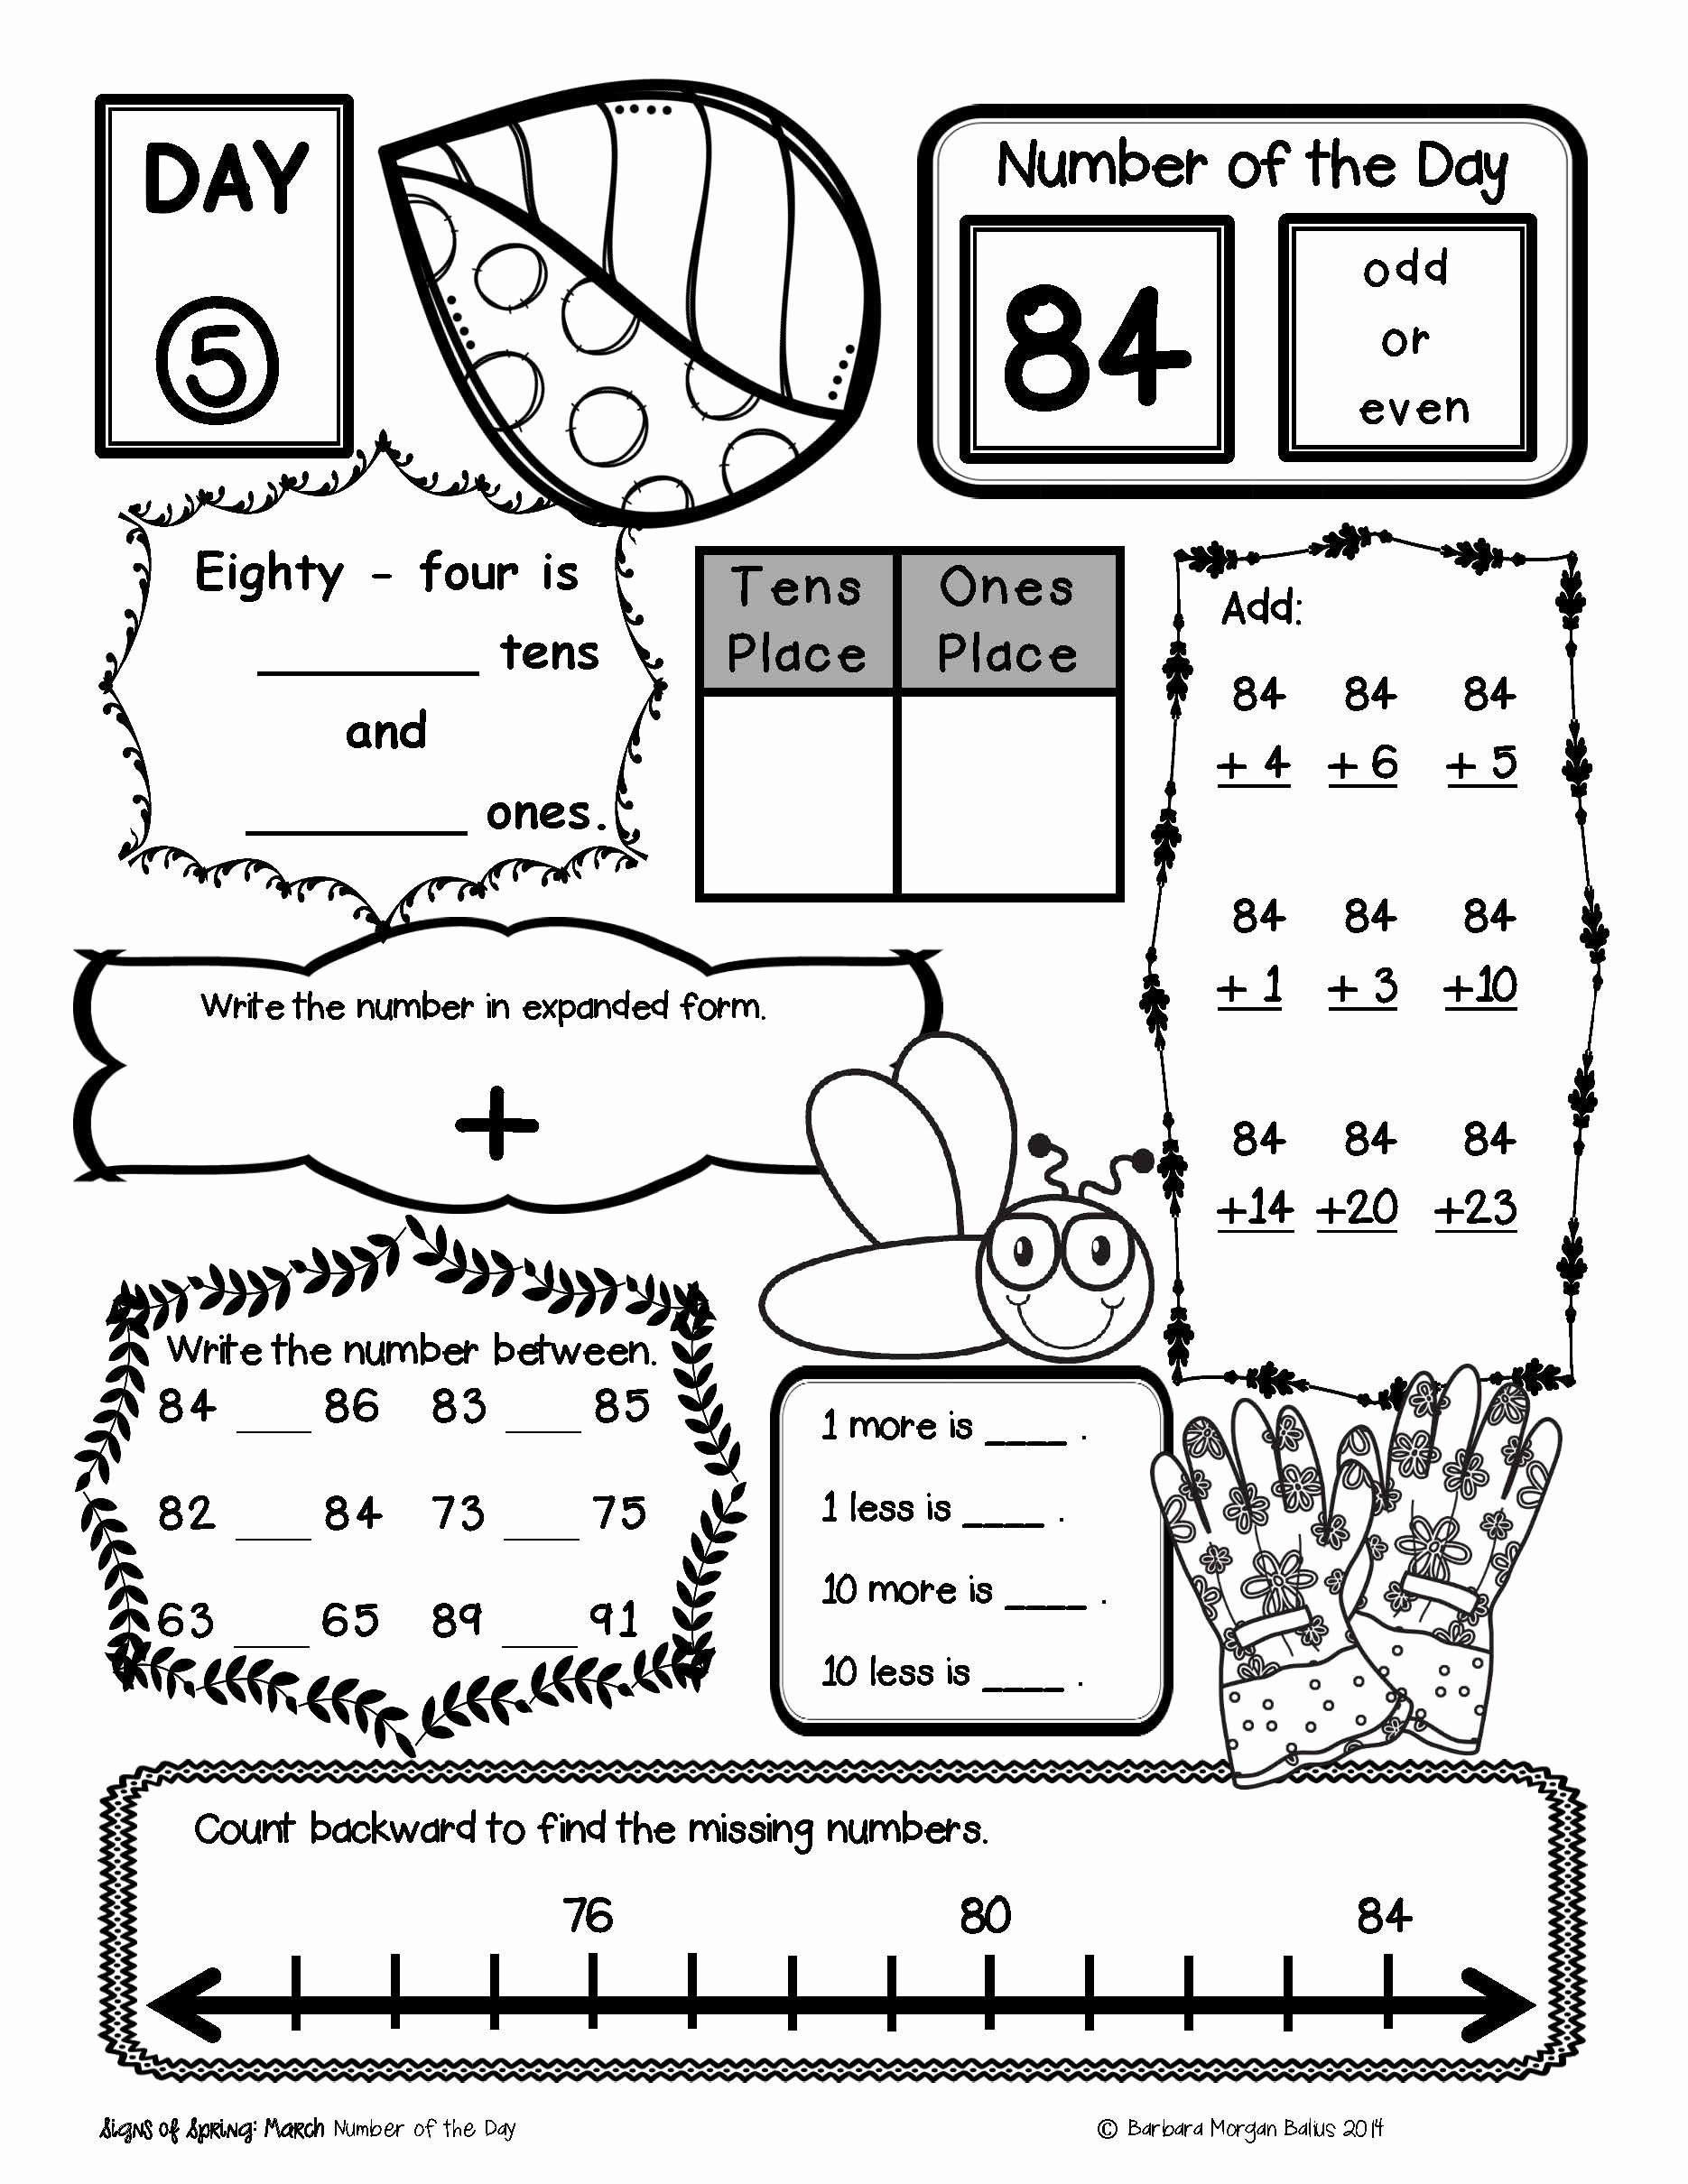 30 Elements Compounds And Mixtures Worksheet